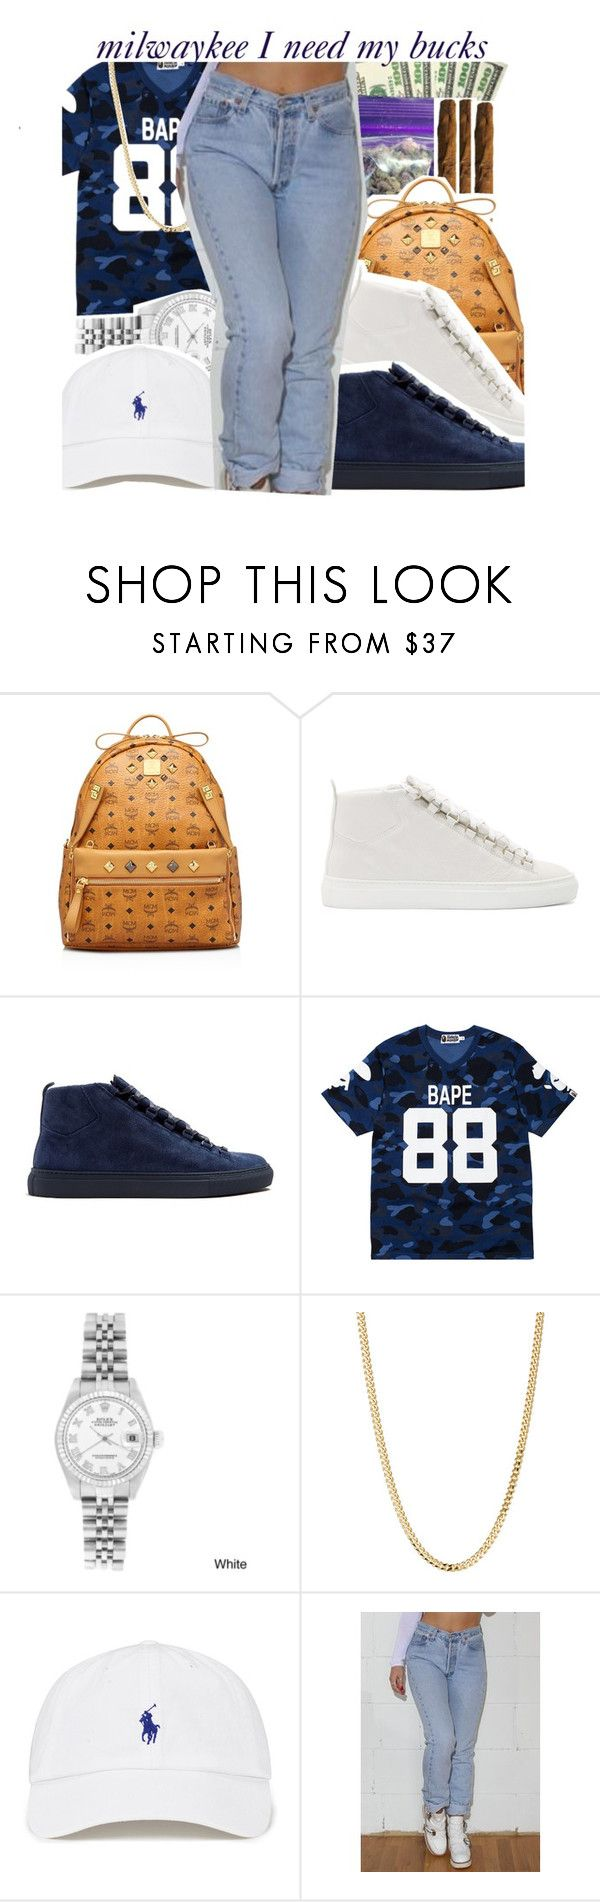 """tell lil b i need my bucks"" by pinksemia ❤ liked on Polyvore featuring INC International Concepts, MCM, Balenciaga, A BATHING APE, Rolex, Bianca Pratt and Levi's"